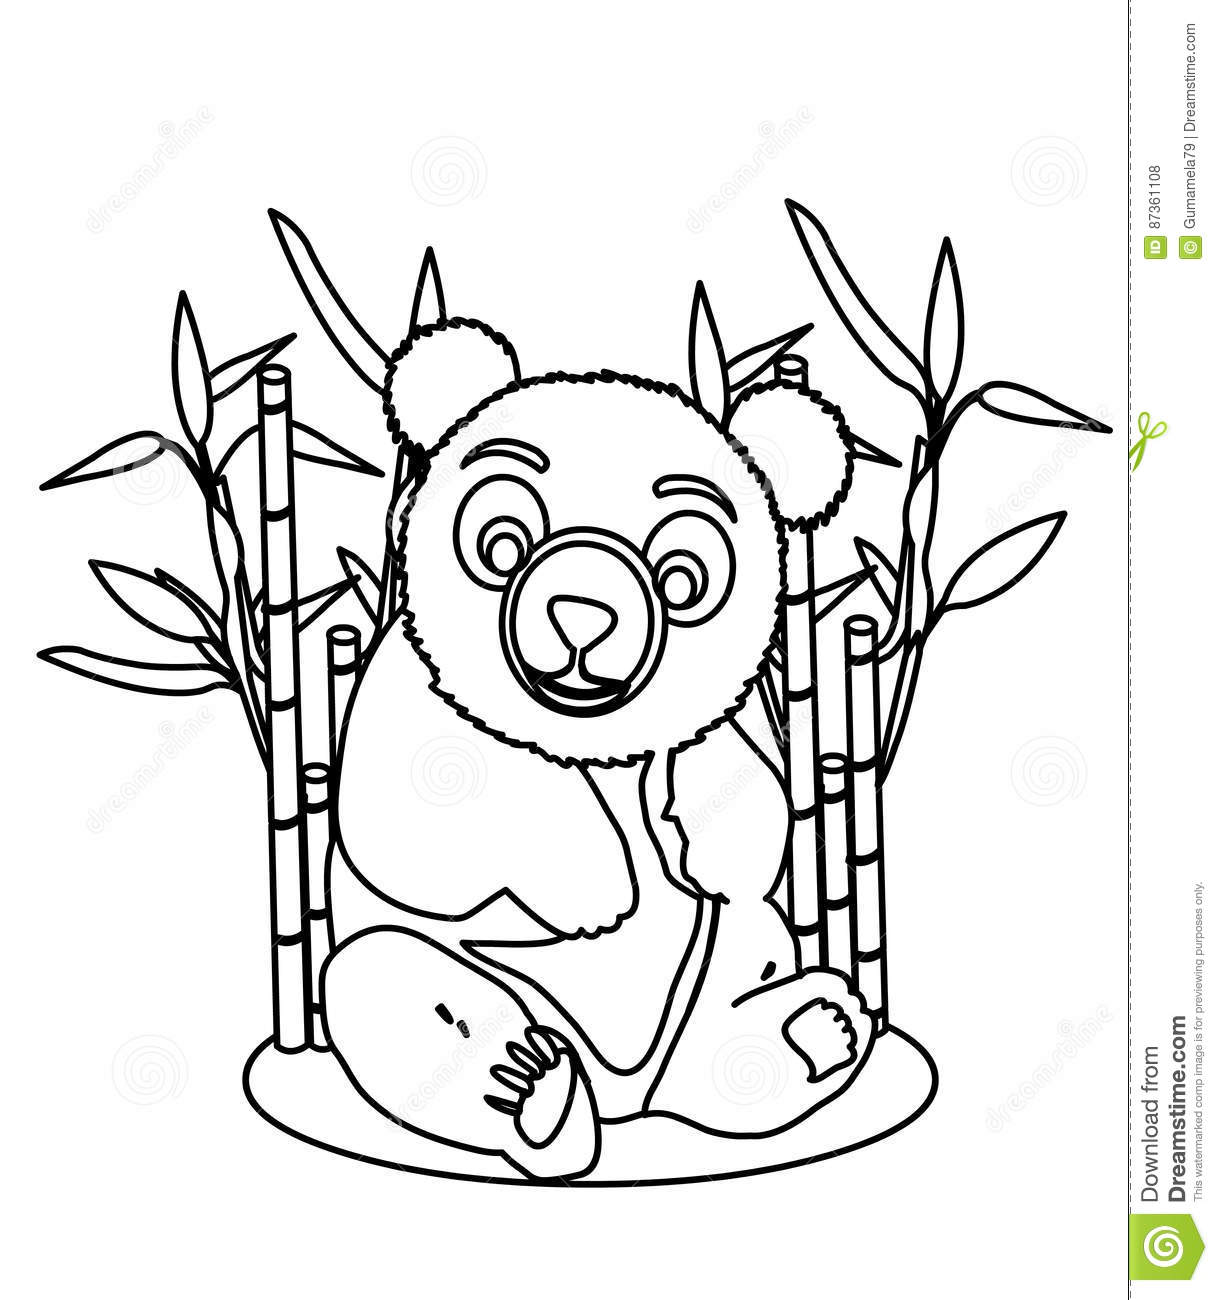 Giant panda coloring page stock illustration. Illustration of games ...